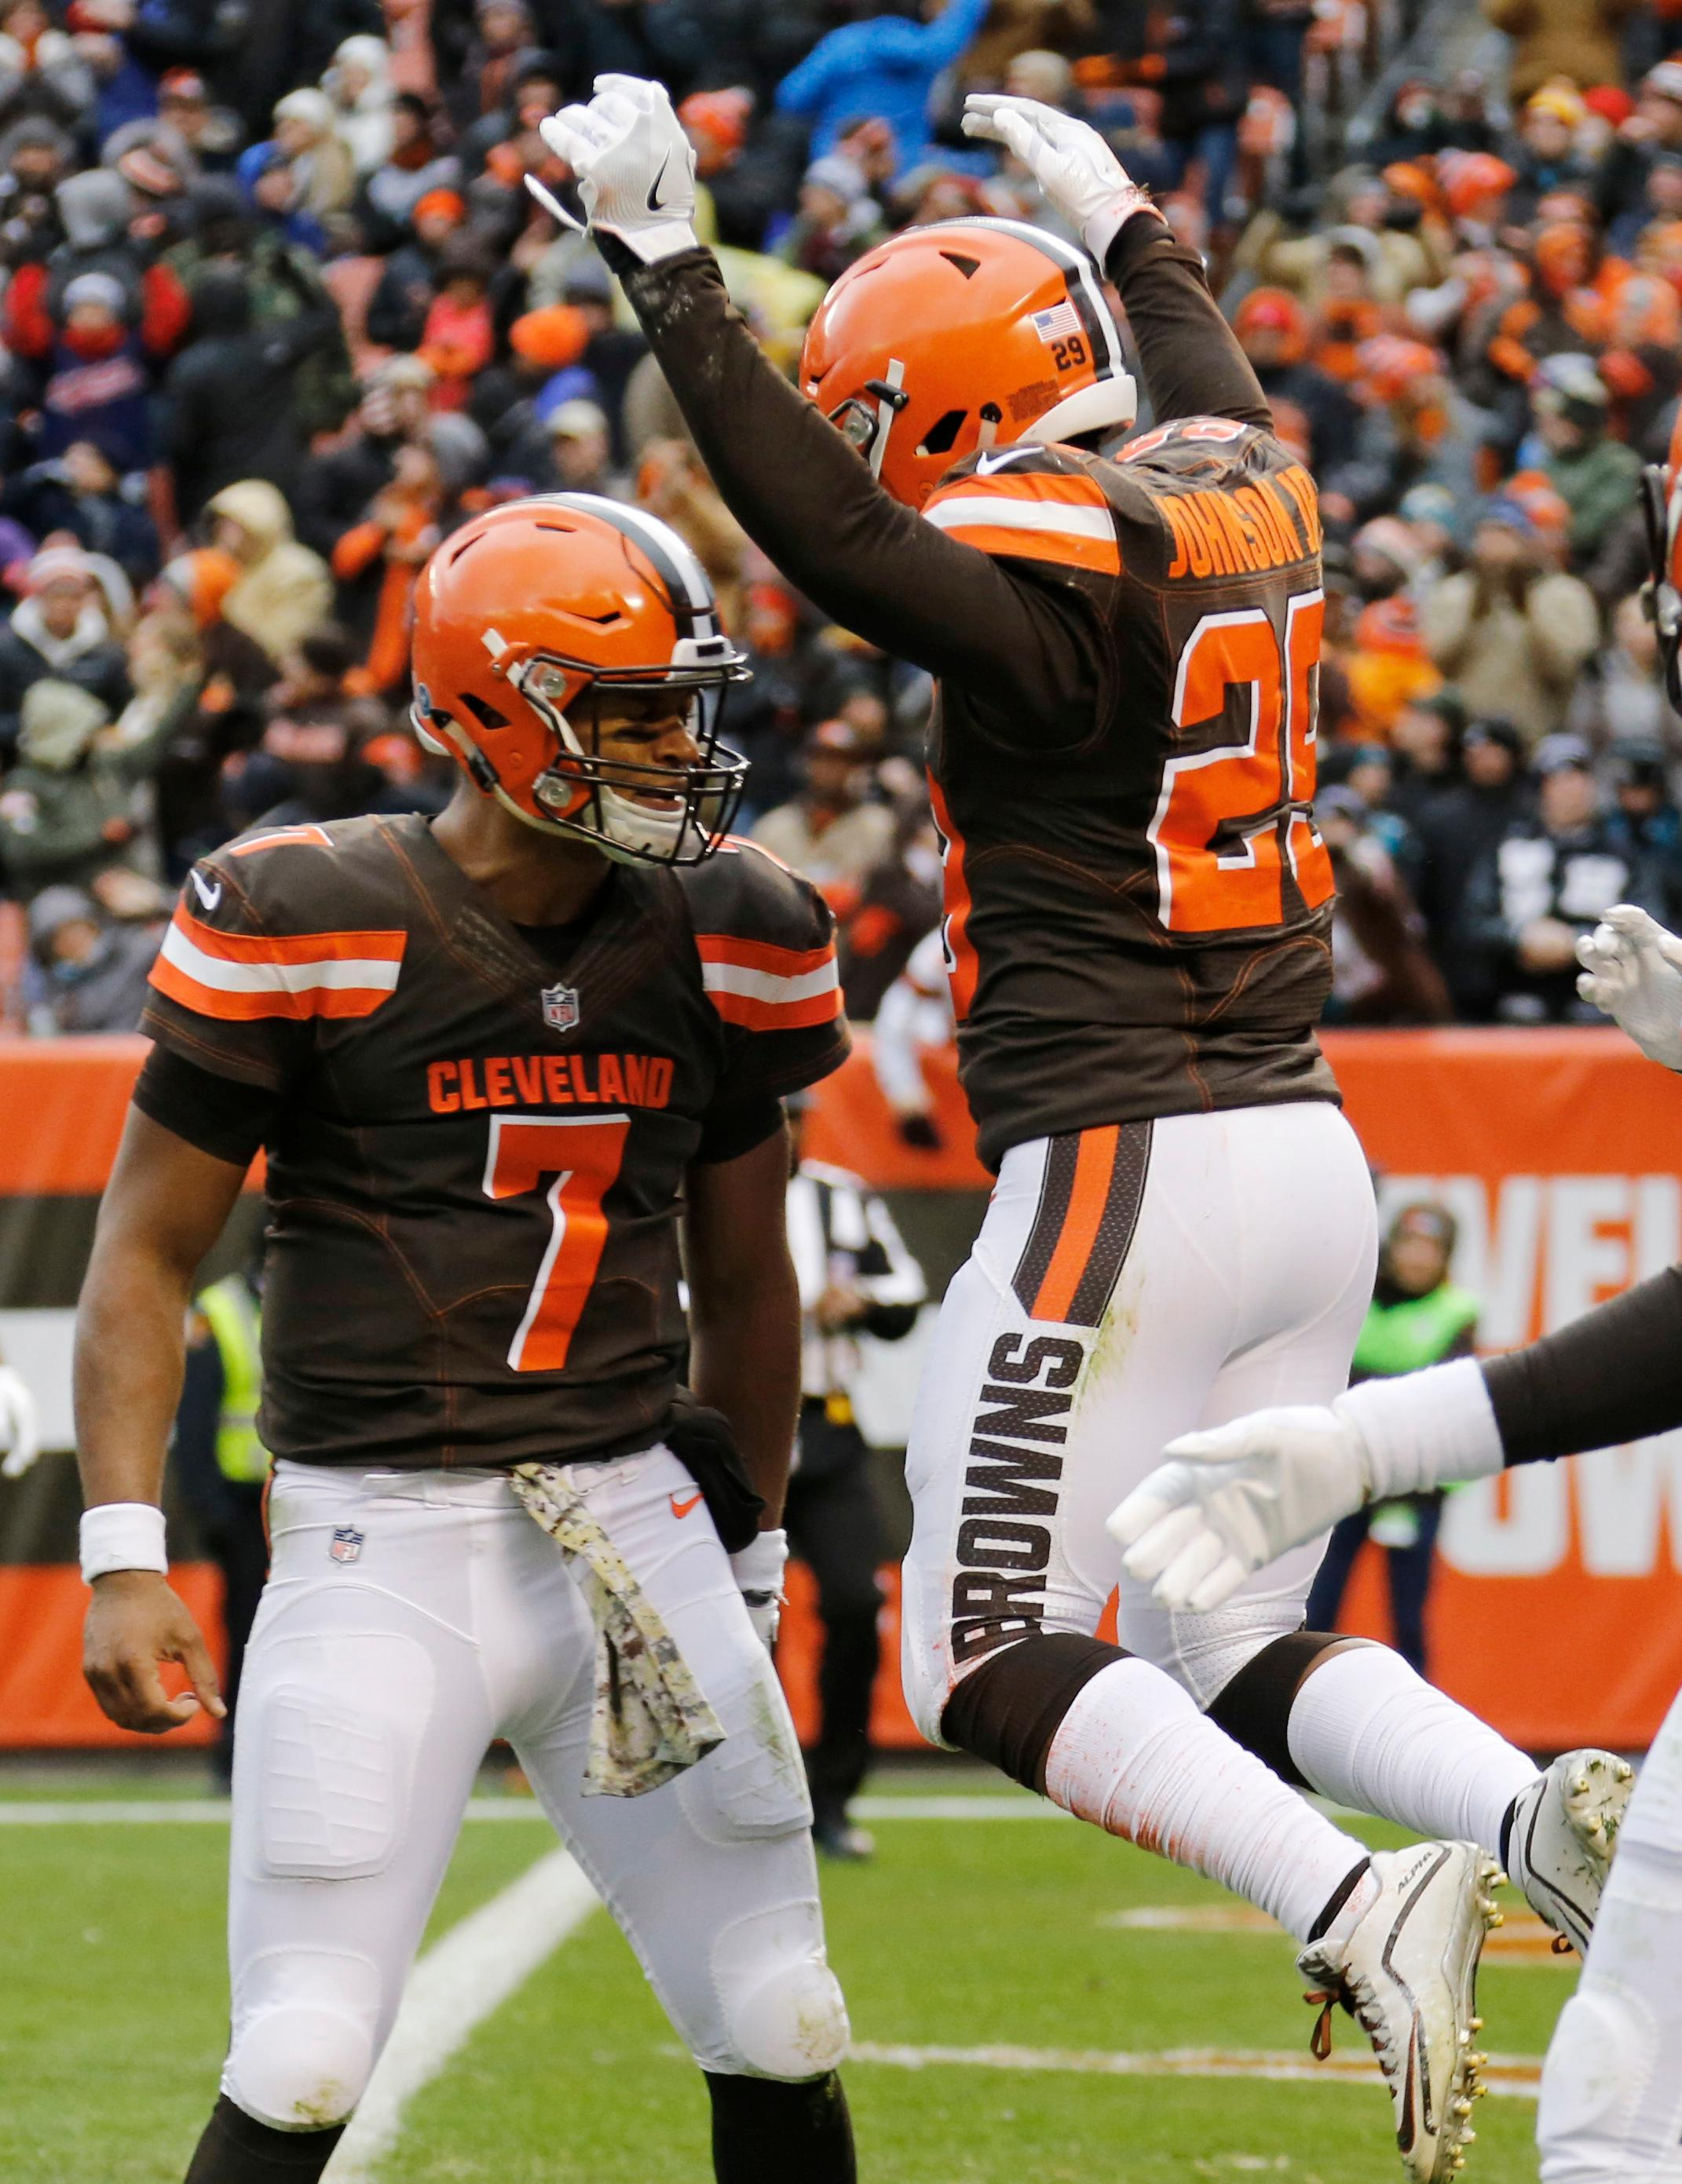 Cleveland Browns running back Duke Johnson, right, celebrates with quarterback DeShone Kizer, left, after scoring a touchdown after a 27-yard pass in the first half of an NFL football game against the Jacksonville Jaguars, Sunday, Nov. 19, 2017, in Cleveland. (AP Photo/Ron Schwane)